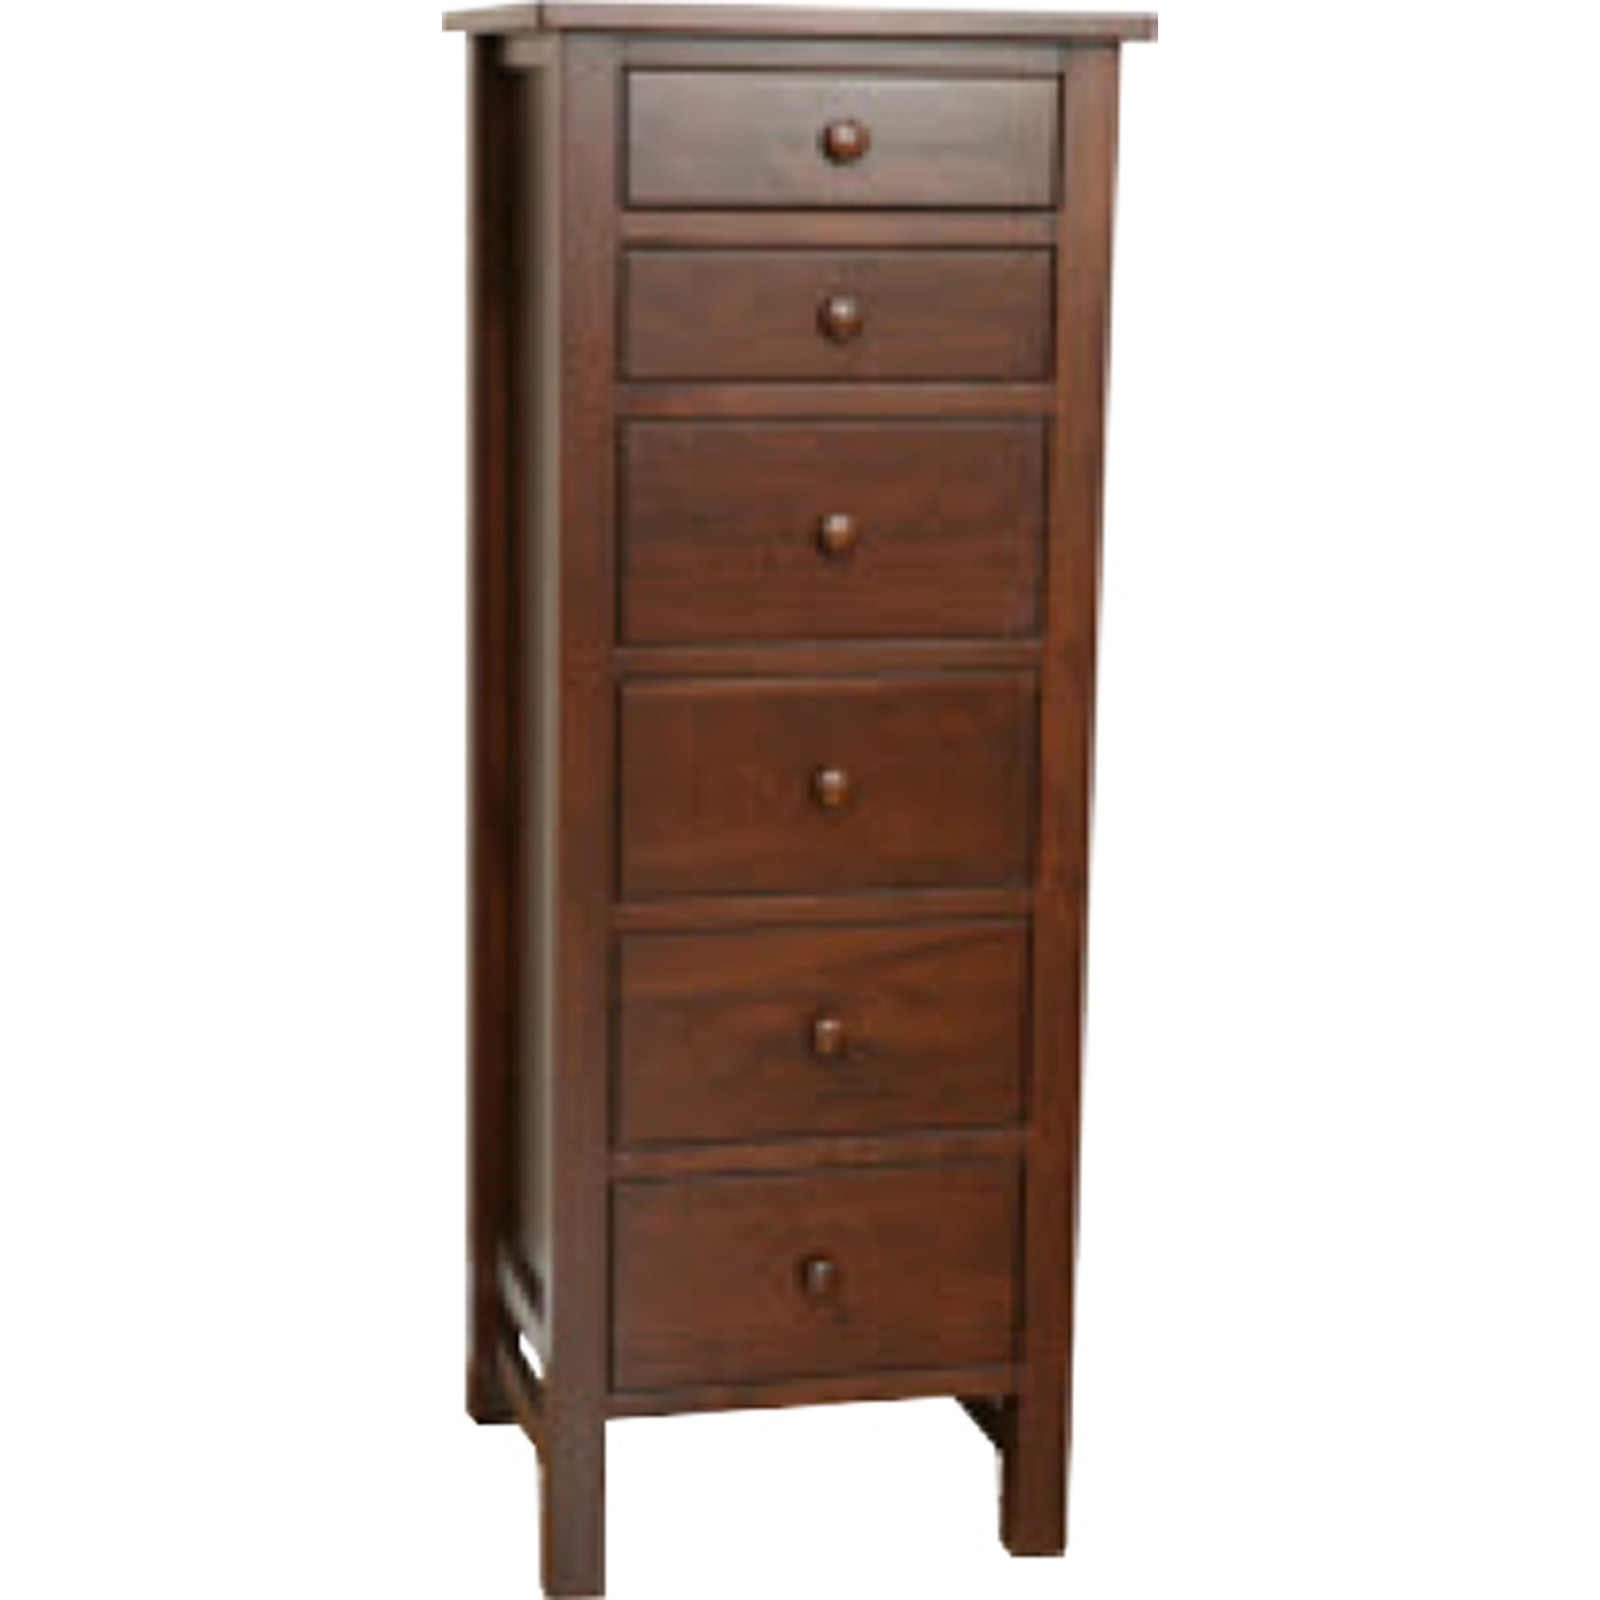 Cabin Creek Bedroom Set CA-546 Lingerie Chest